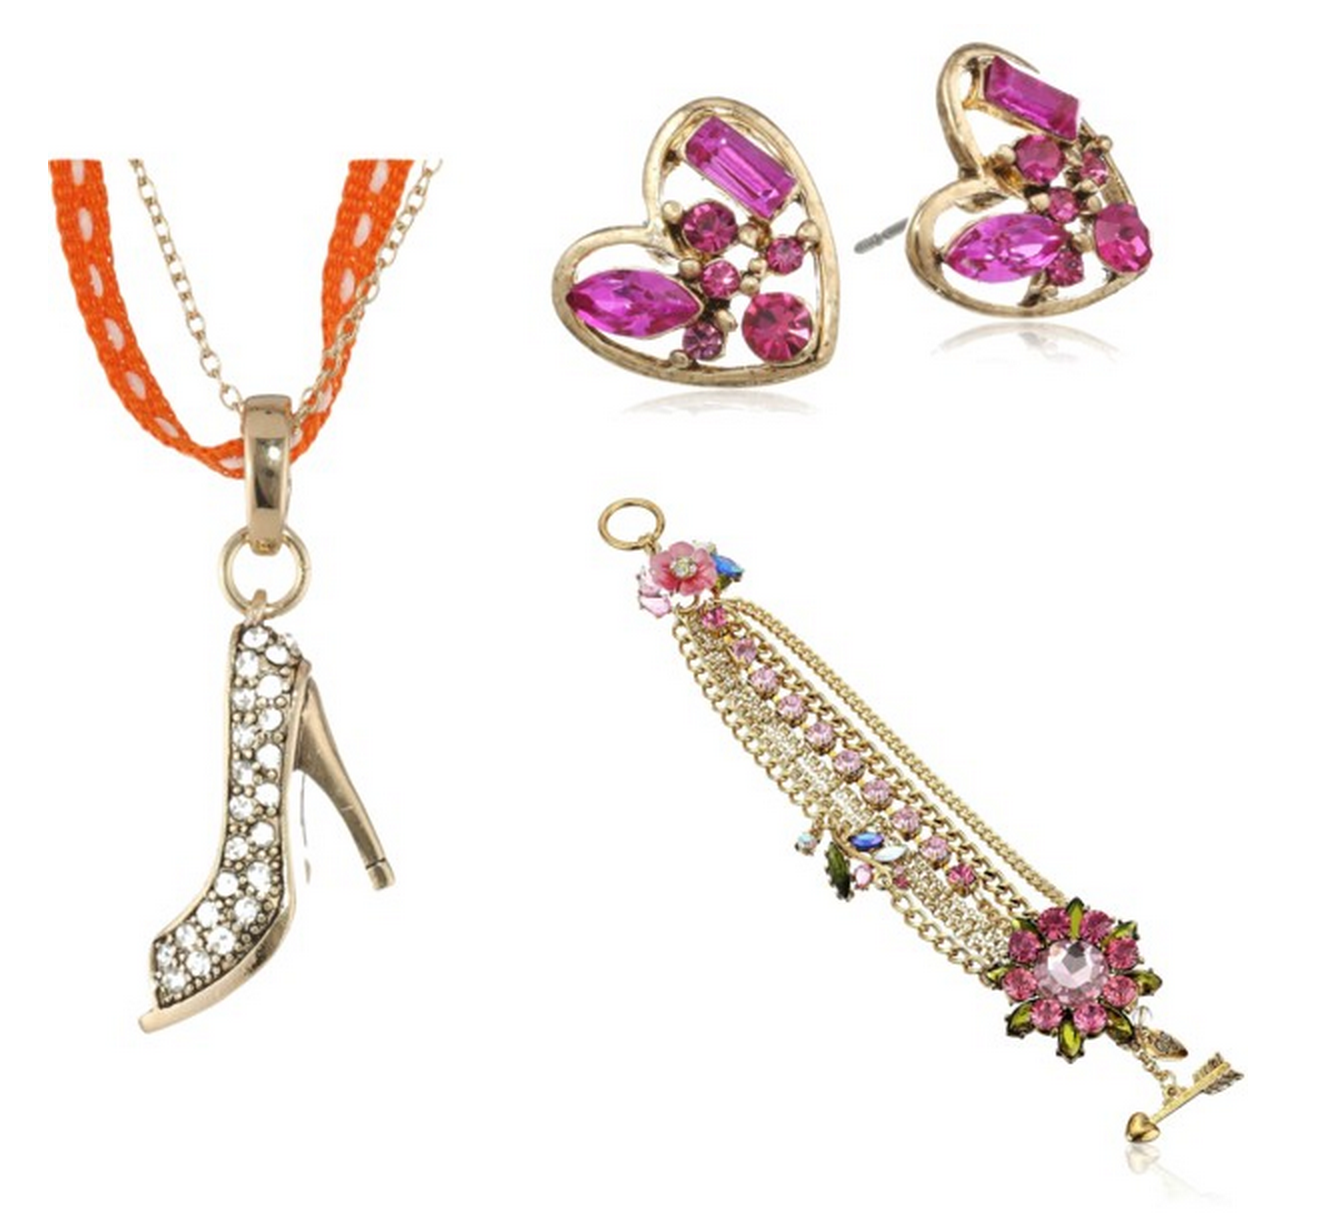 25% Or More Off Betsey Johnson Jewelry! (Prices Start At Just $12.50!)